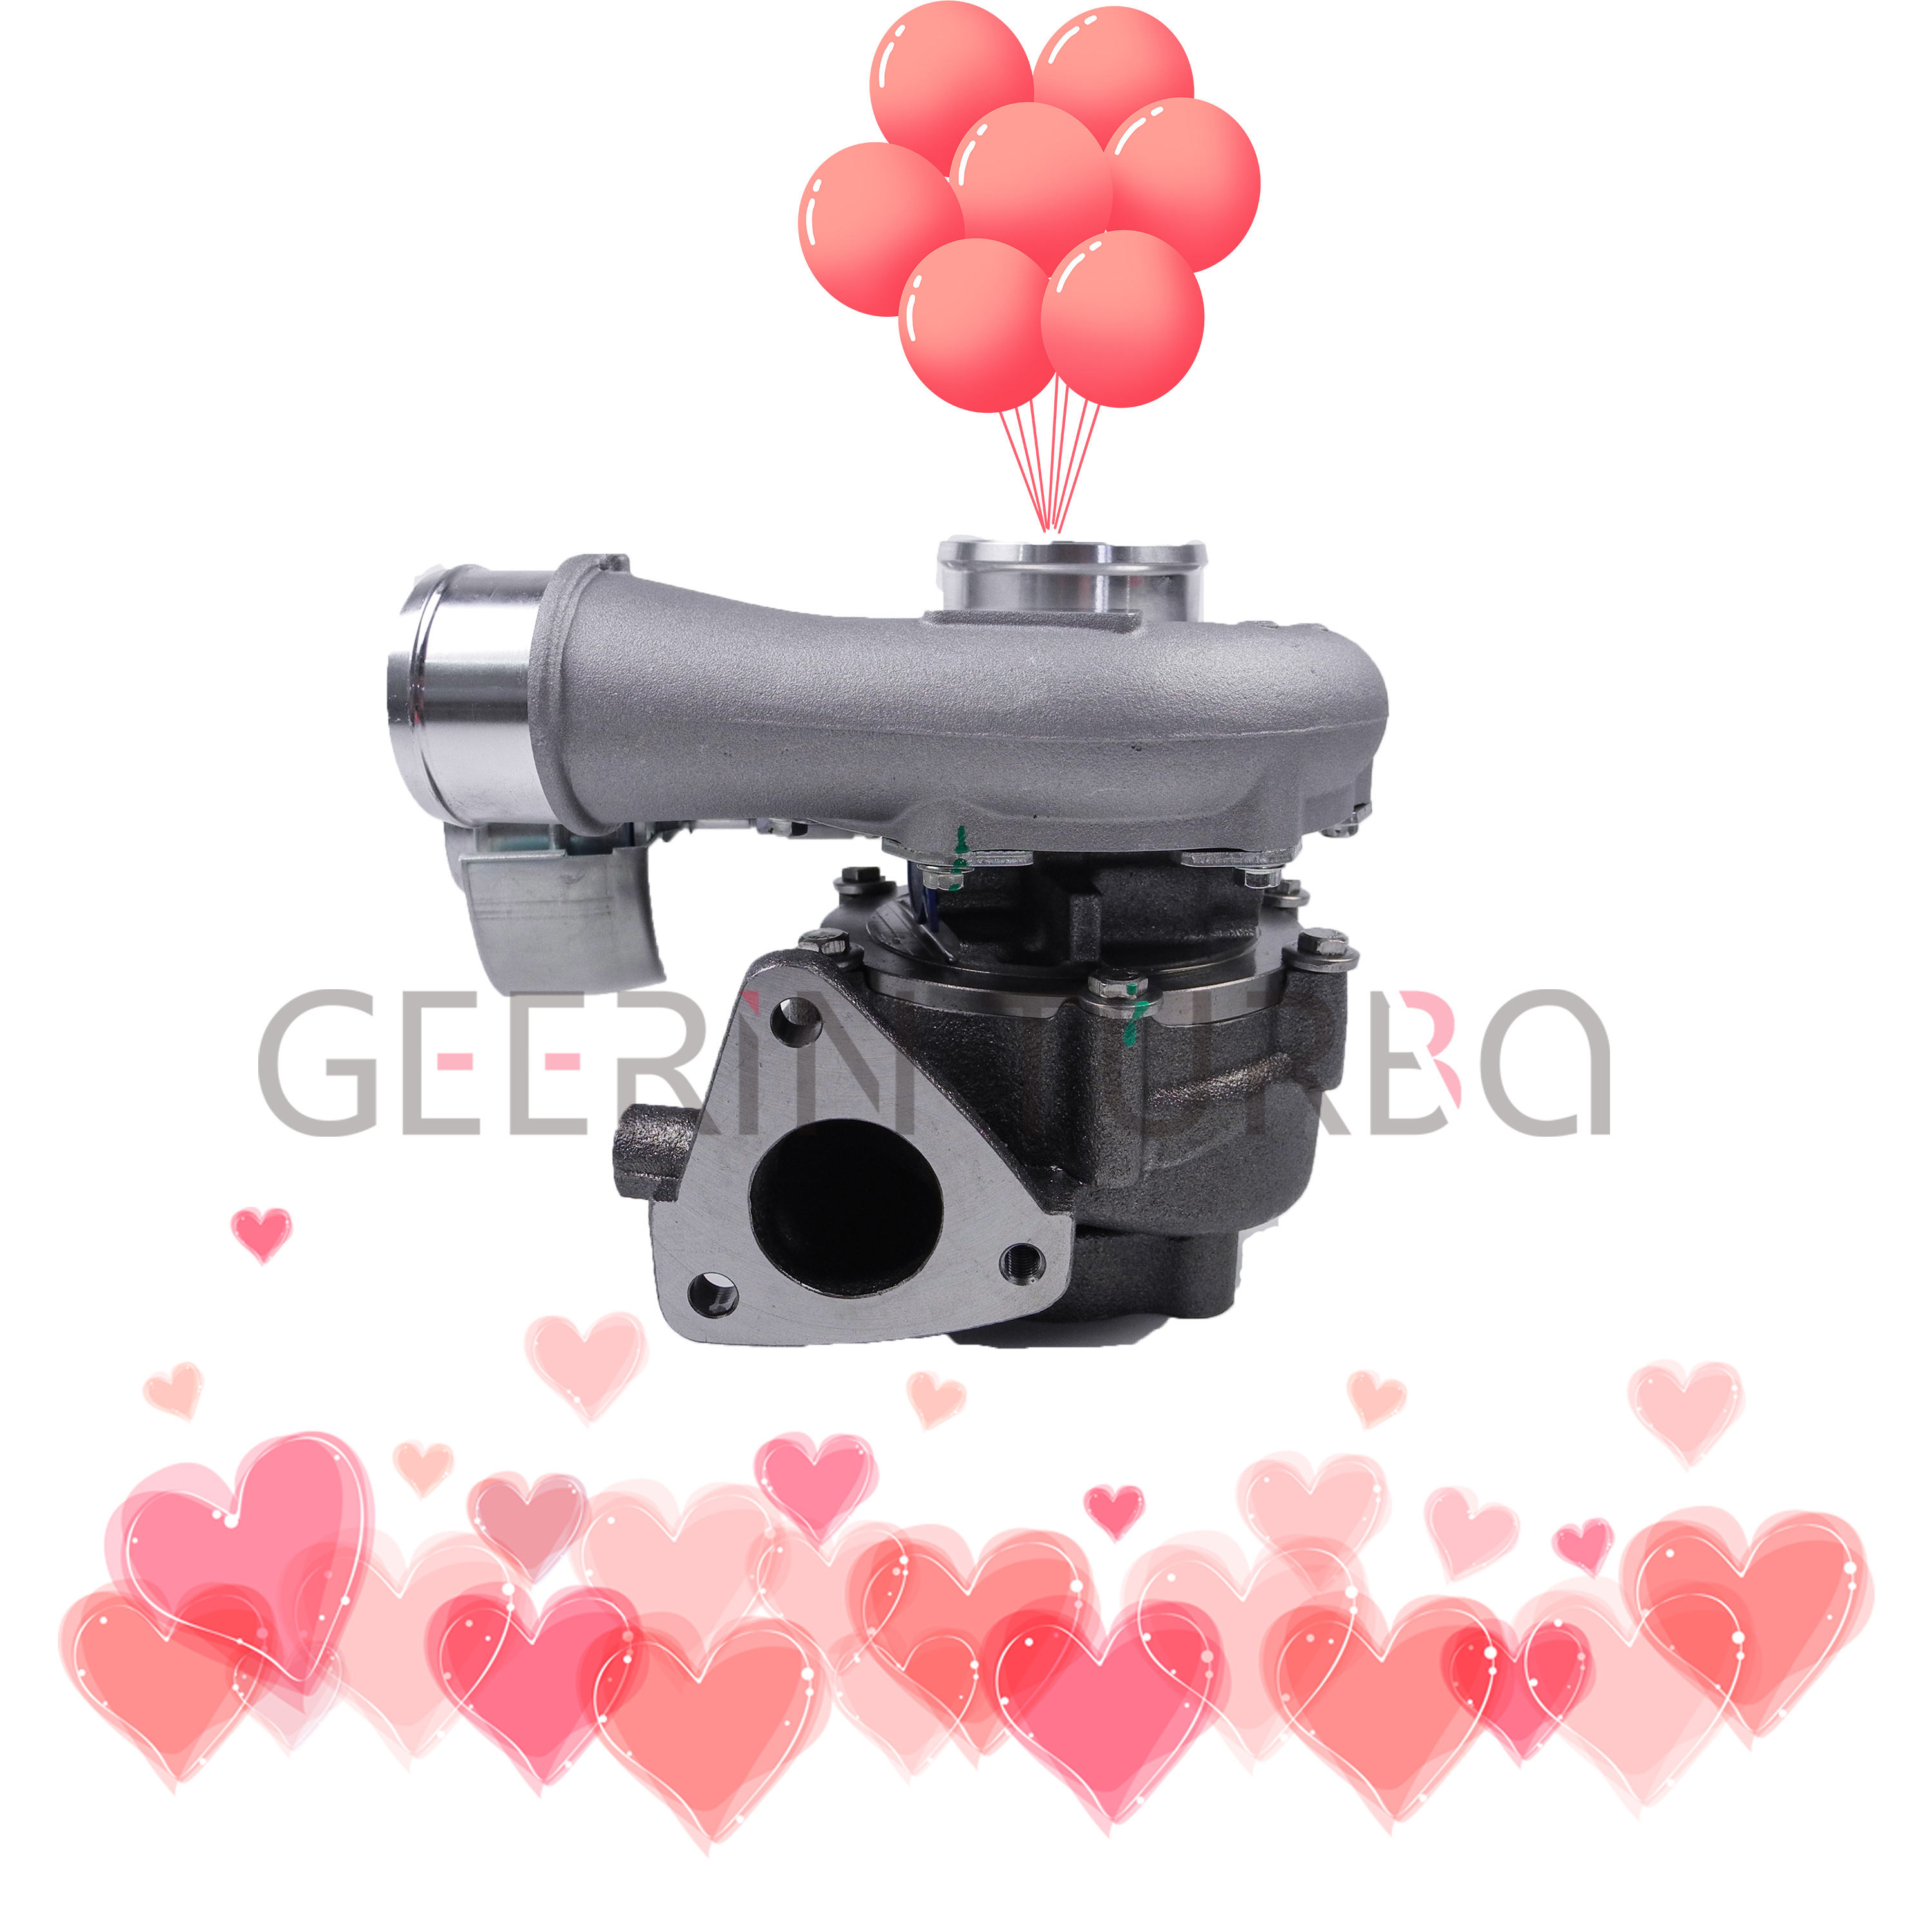 Turbocompressore TF035 49135-07310 TURBOCOMPRESSORE 28231-07810 per Santa Fe 2.2 CRDI